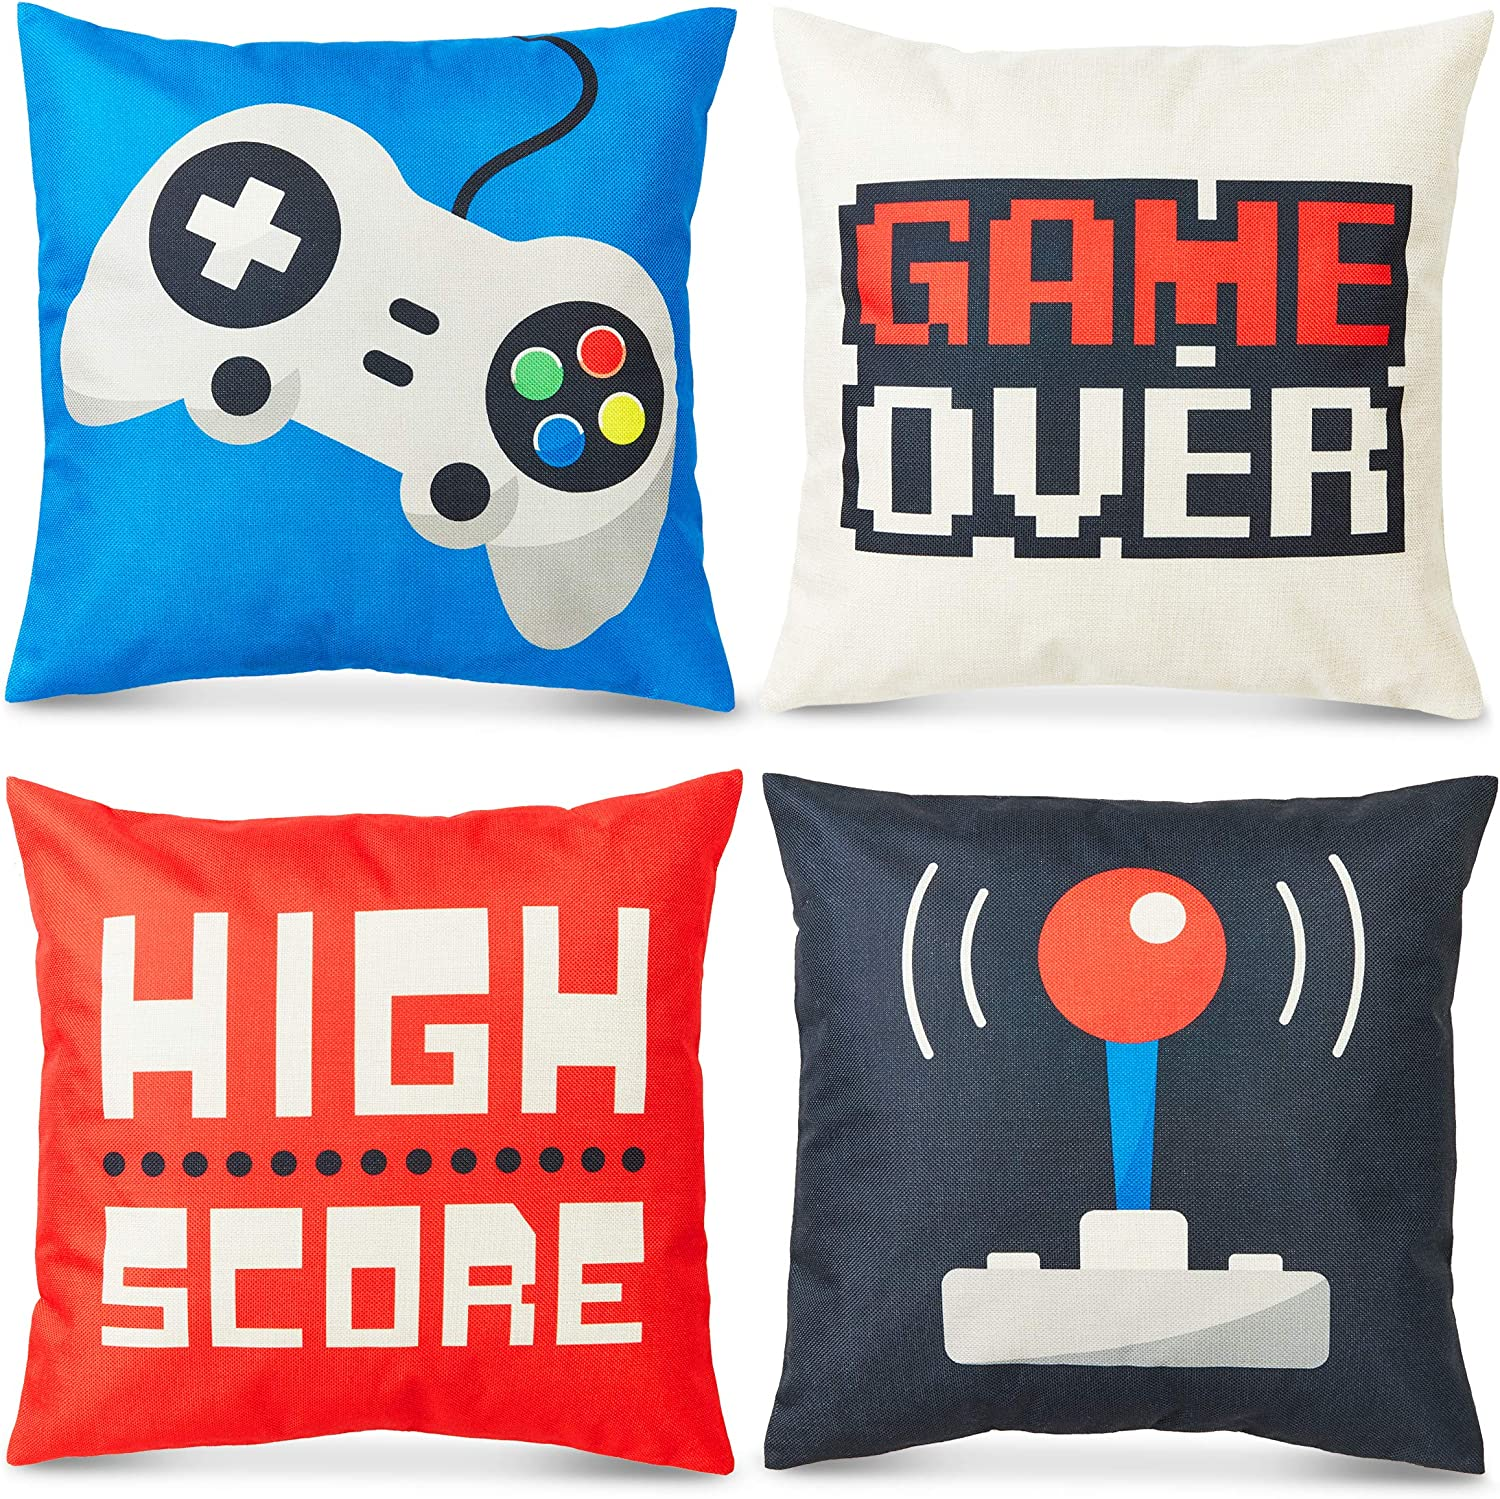 Juvale Decorative Throw Pillow Covers, Video Games (18 x 18 Inches, 4 Pack)